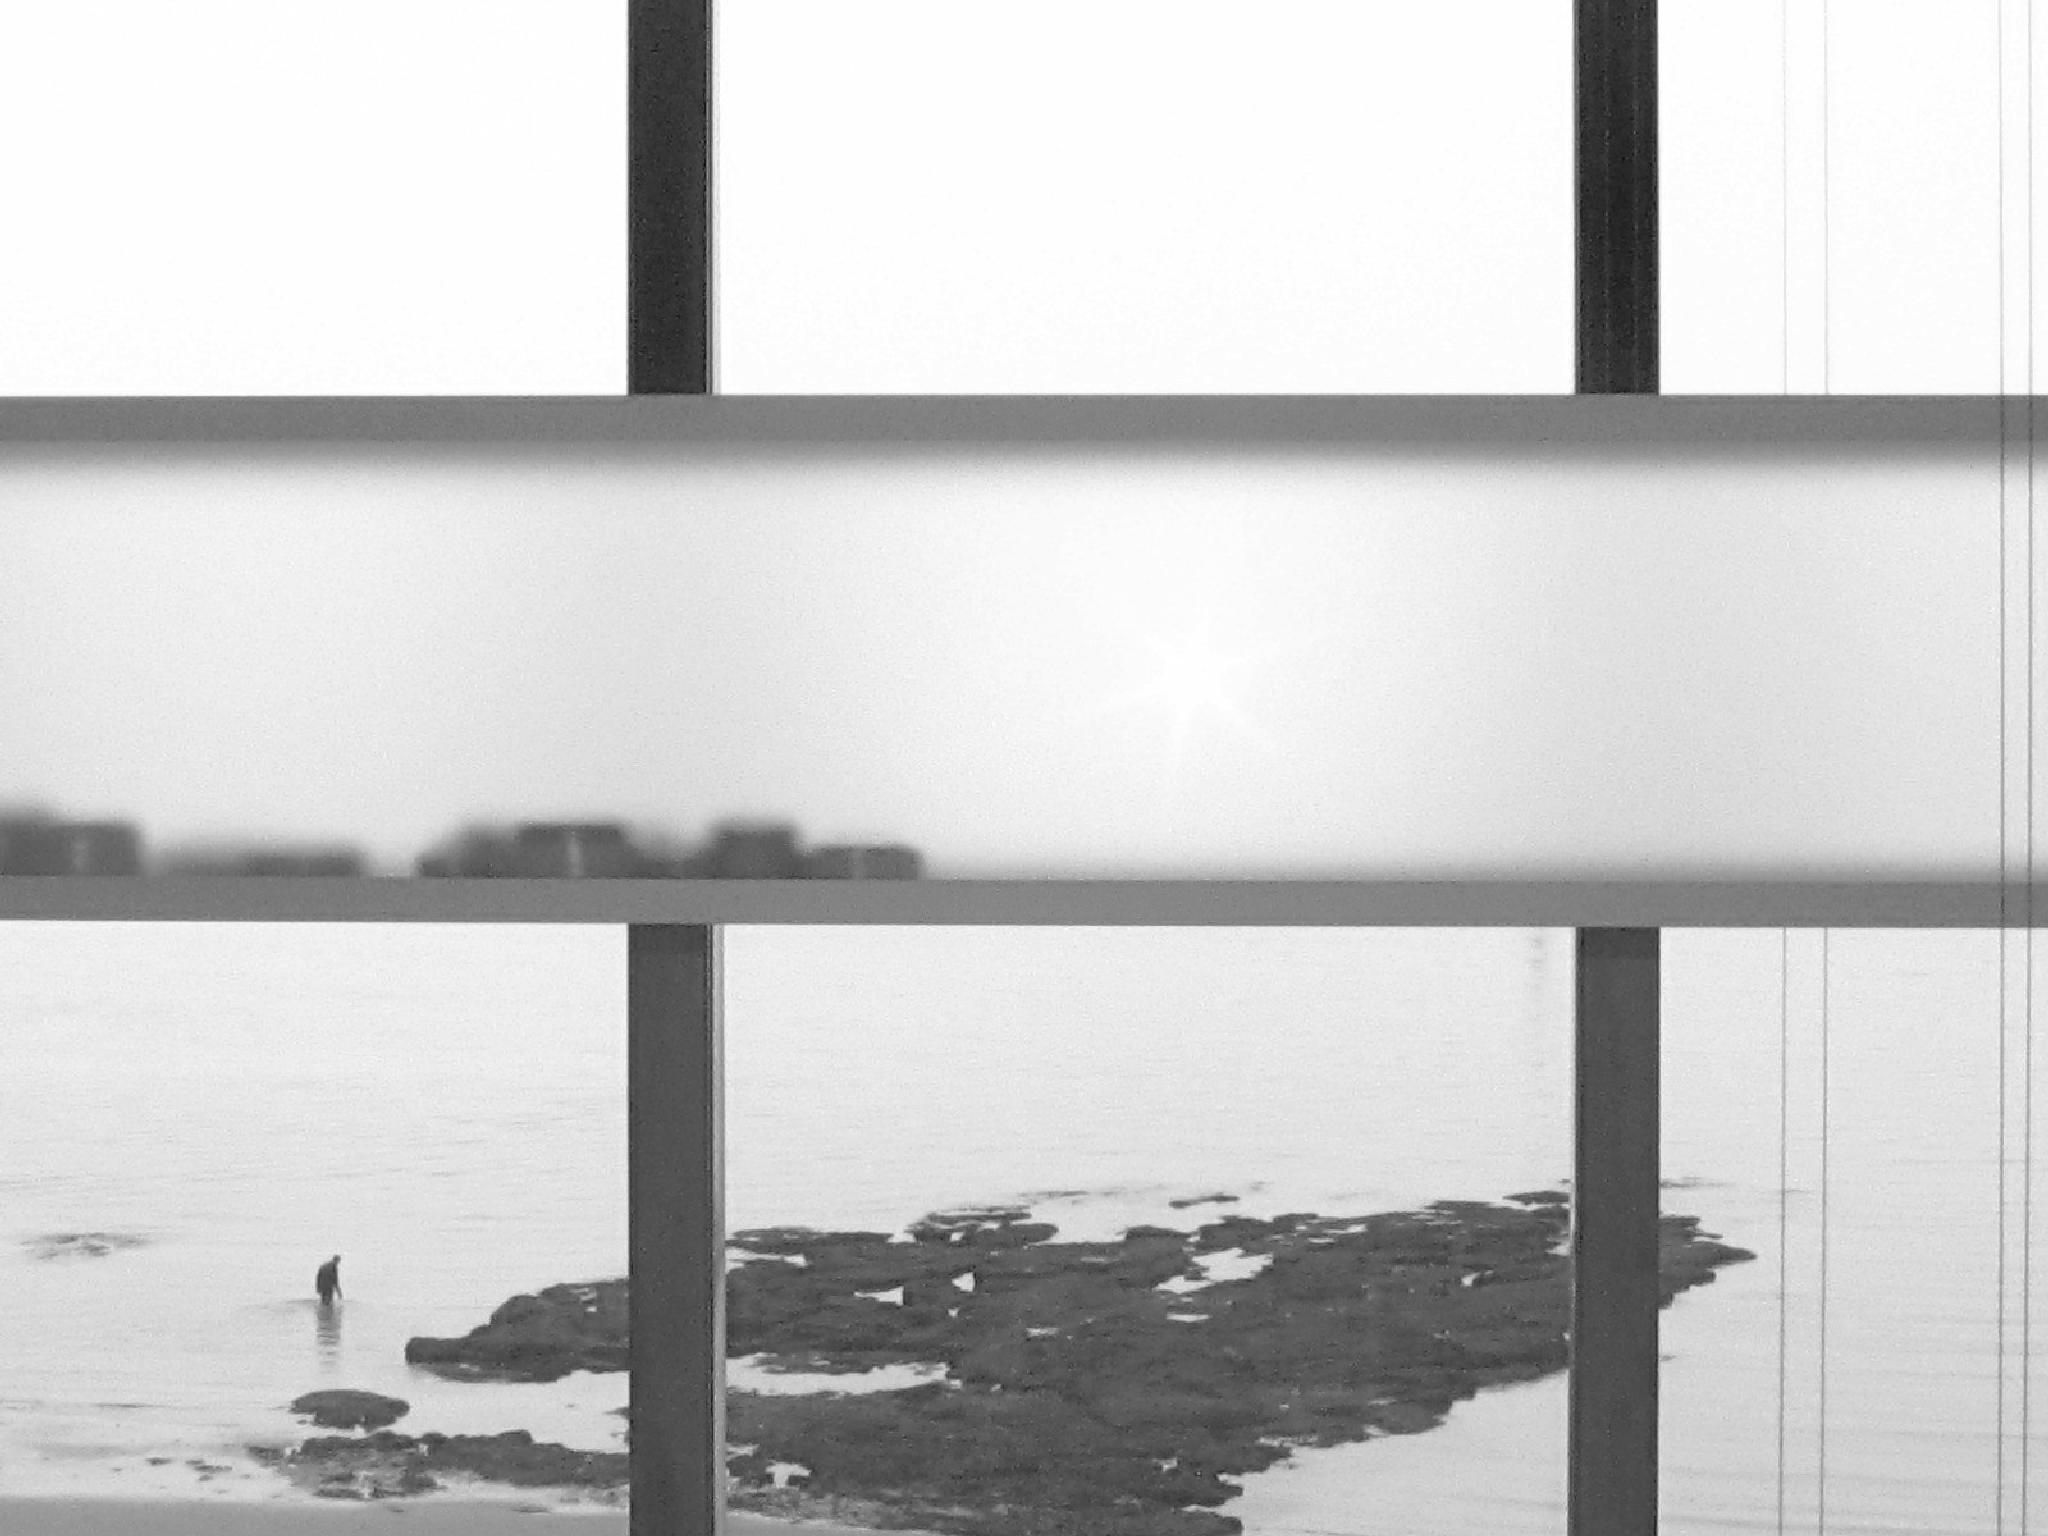 Viewing landscape through art, Turner Gallery, Margate by FRC